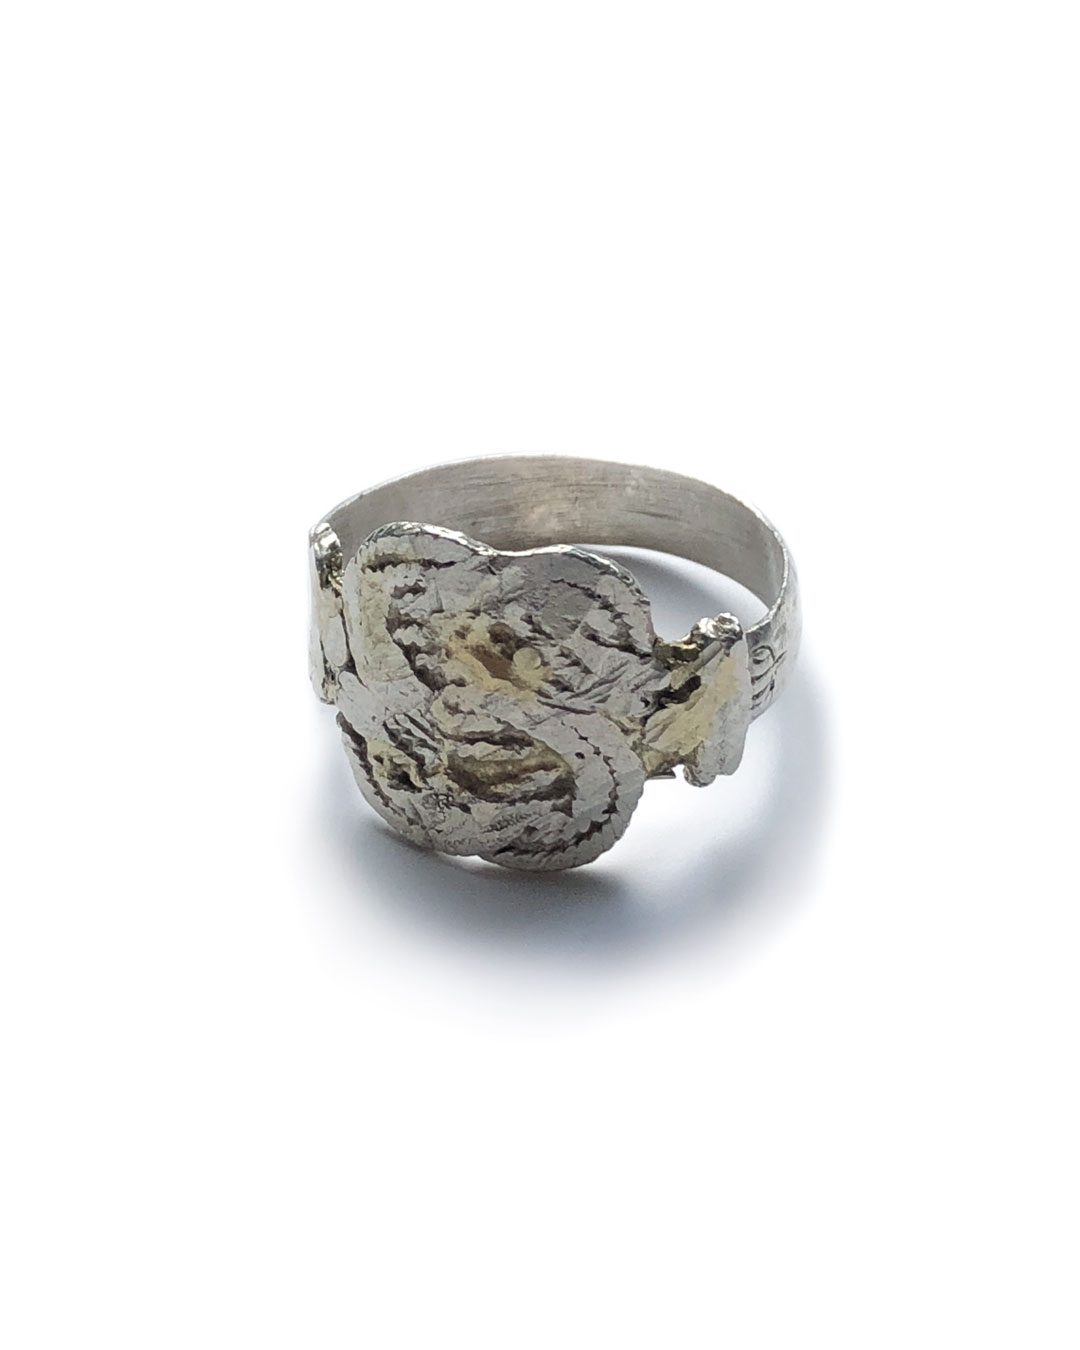 Chequita Nahar, Matti, 2017, ring; silver, 24ct gold, 22 x 22 x 15 mm, €445